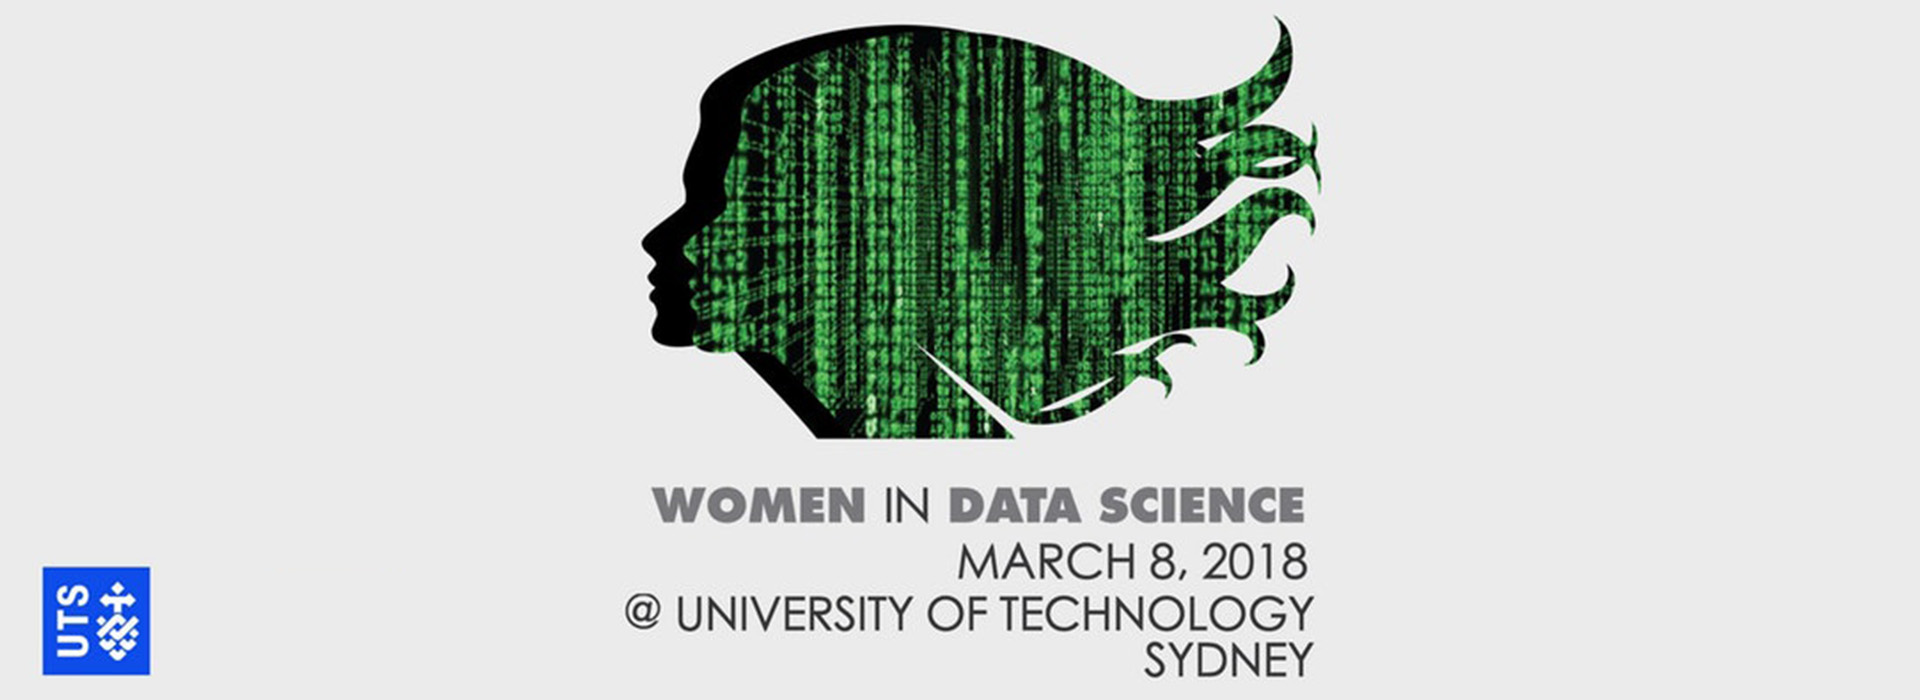 Banner image reads: Women in Data Science. March 8, 2018. At the University of Technology, Sydney.